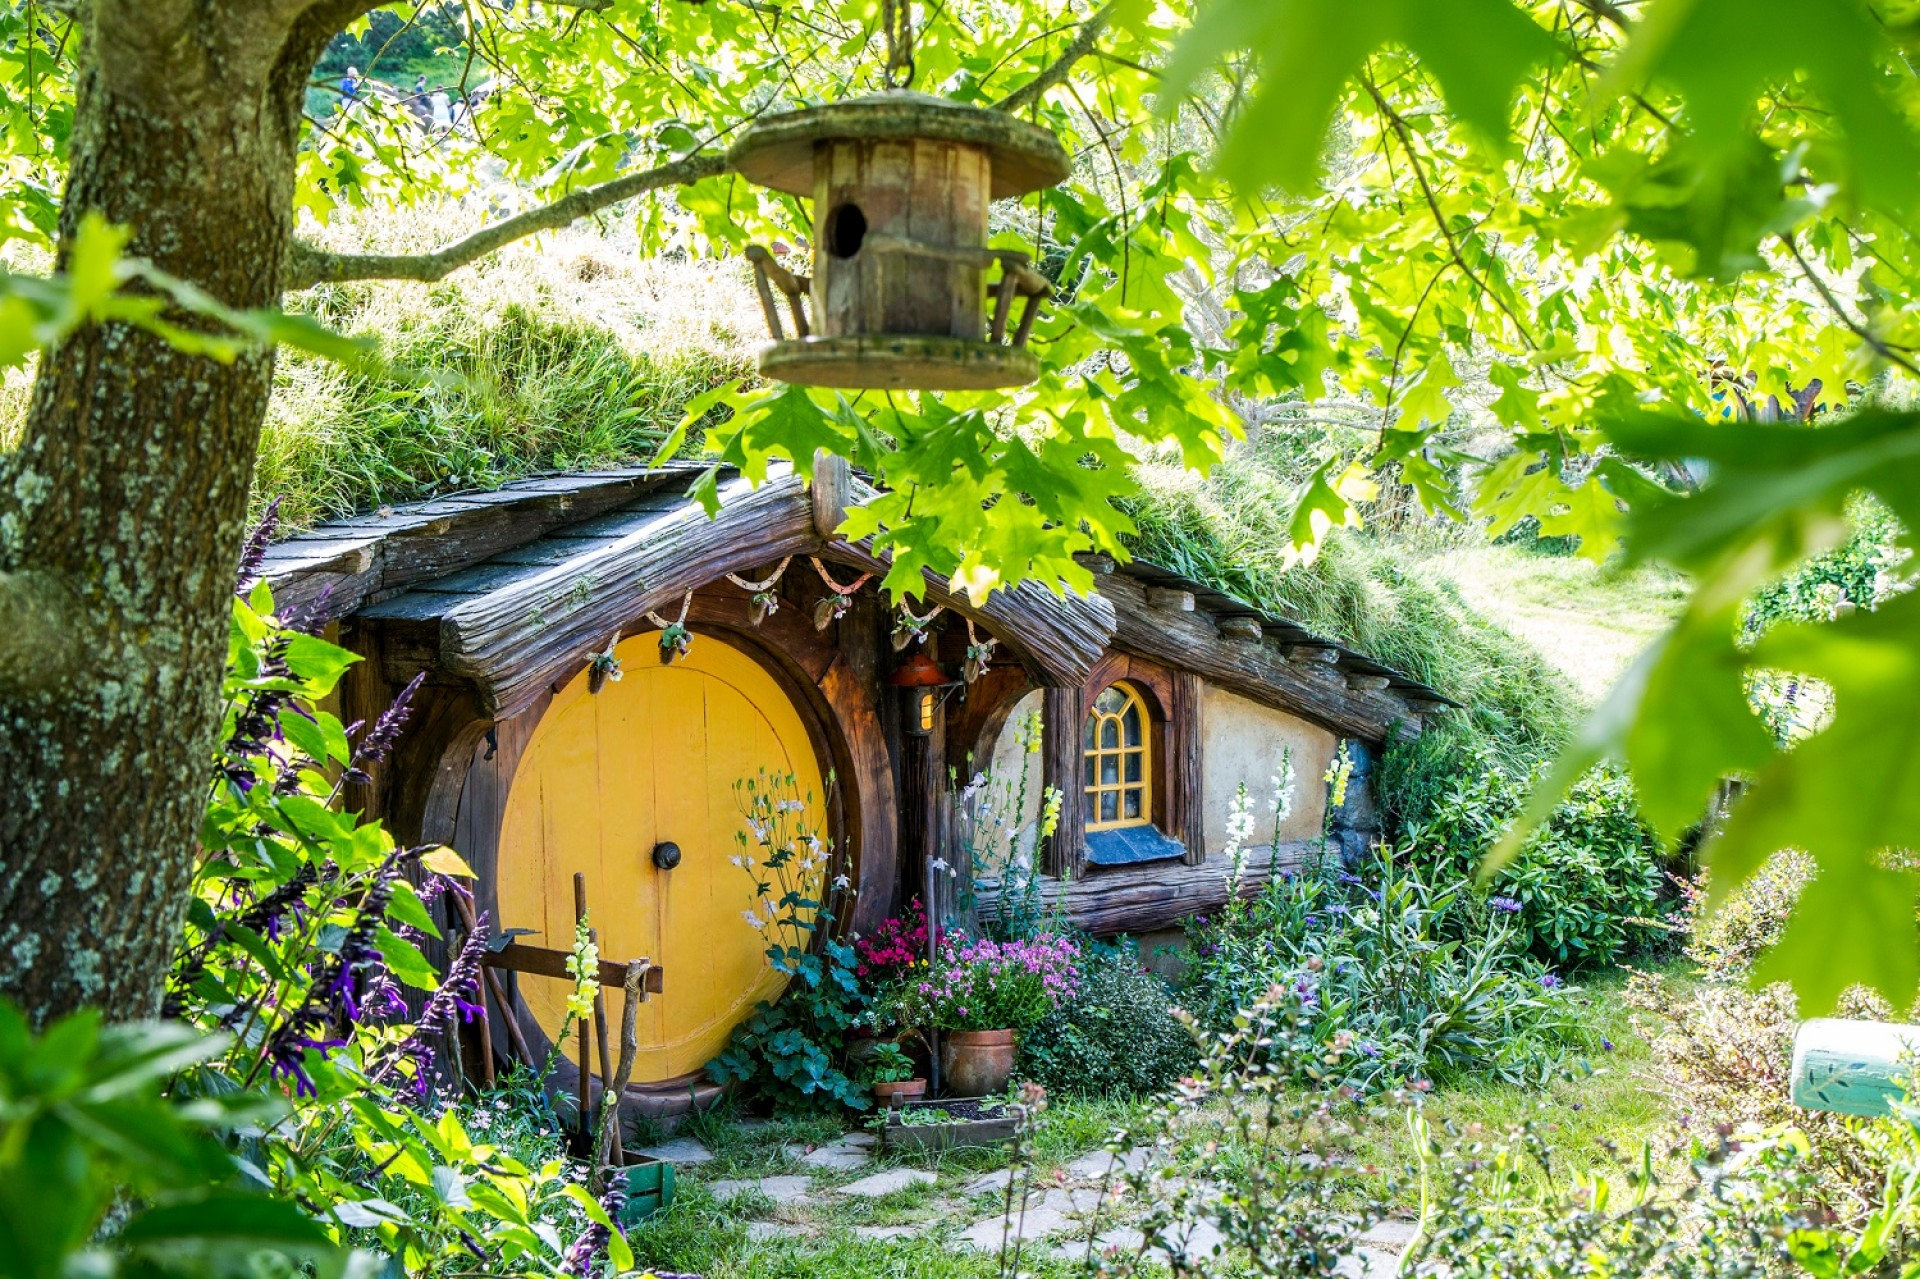 Travel West to Hobbiton and Experience Shire Enjoyment